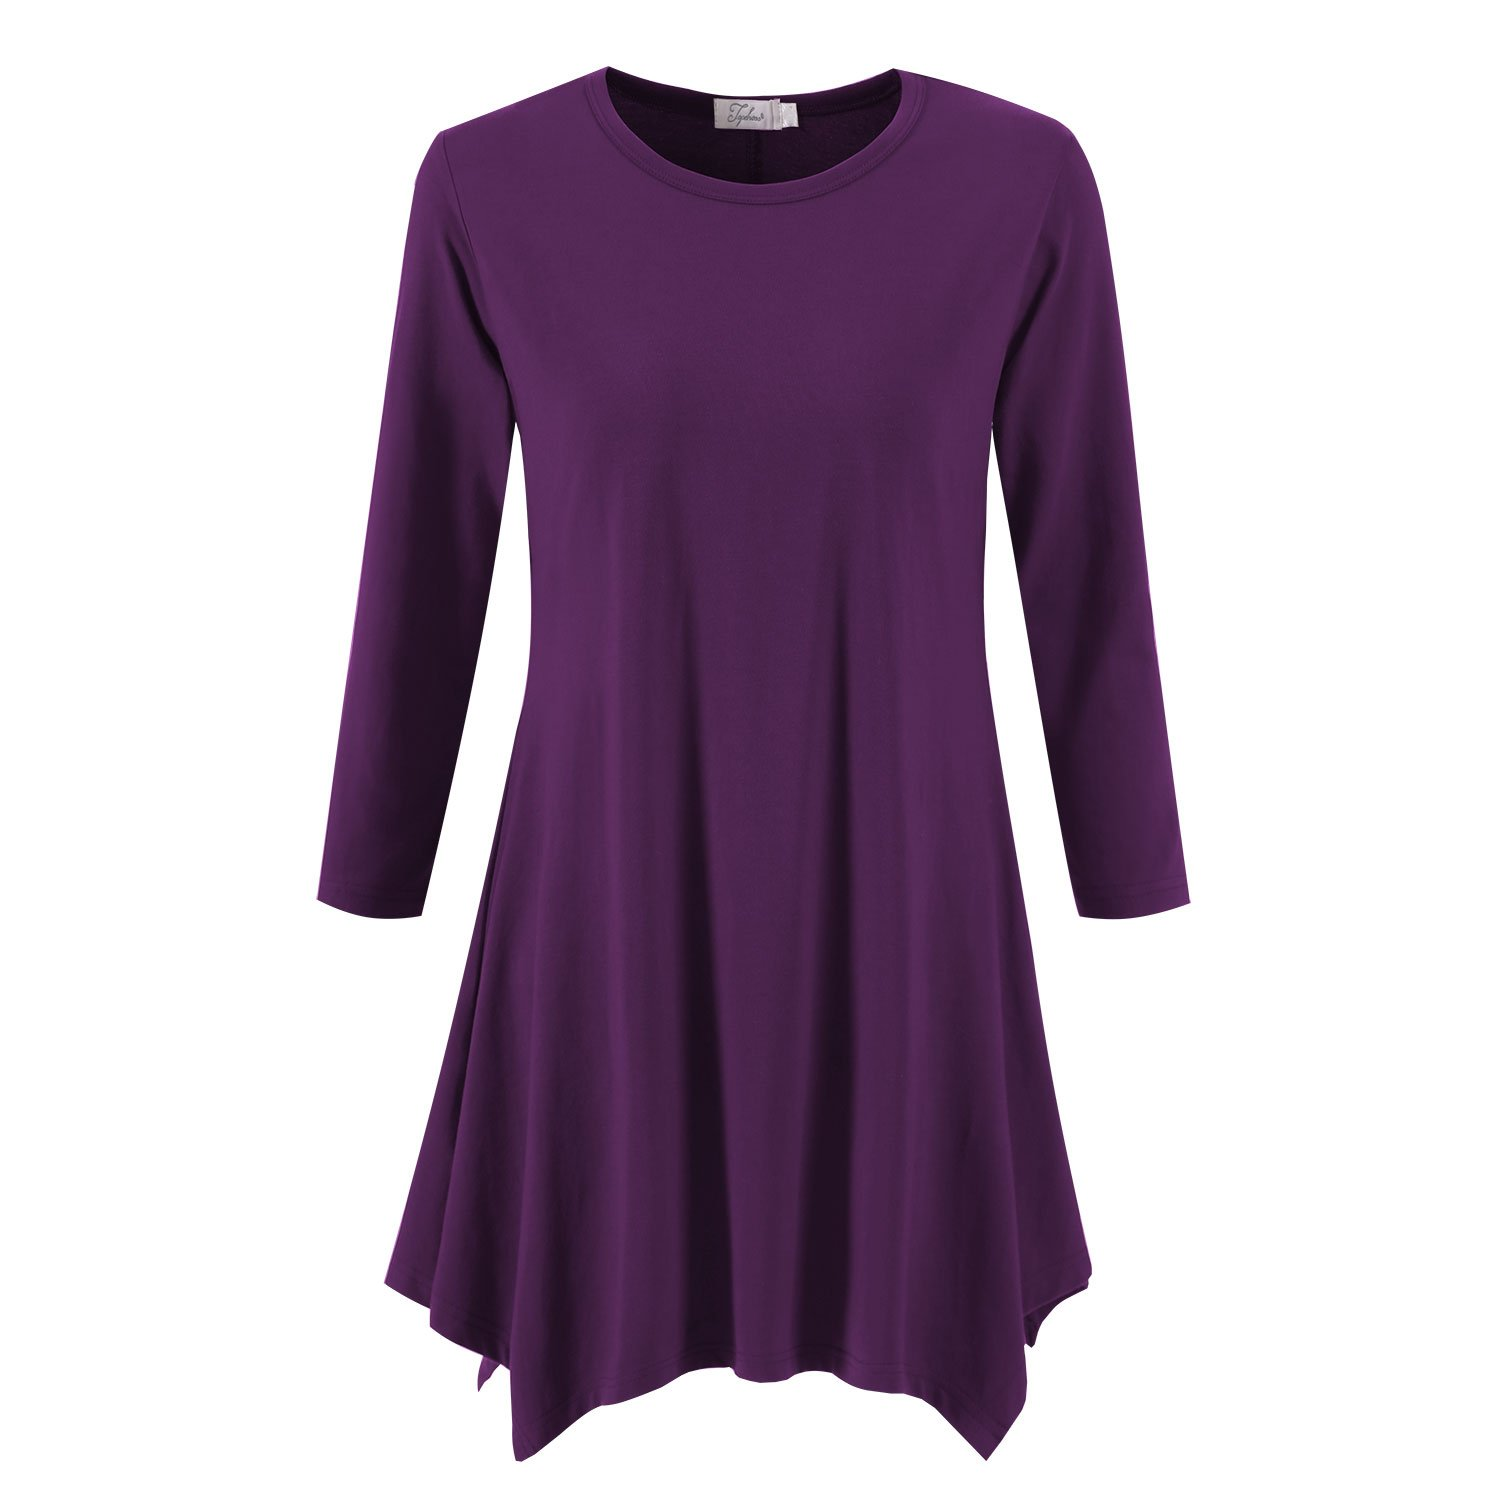 Topdress Women's Swing Tunic Tops 3/4 Sleeve Loose T-Shirt Dress Grape L